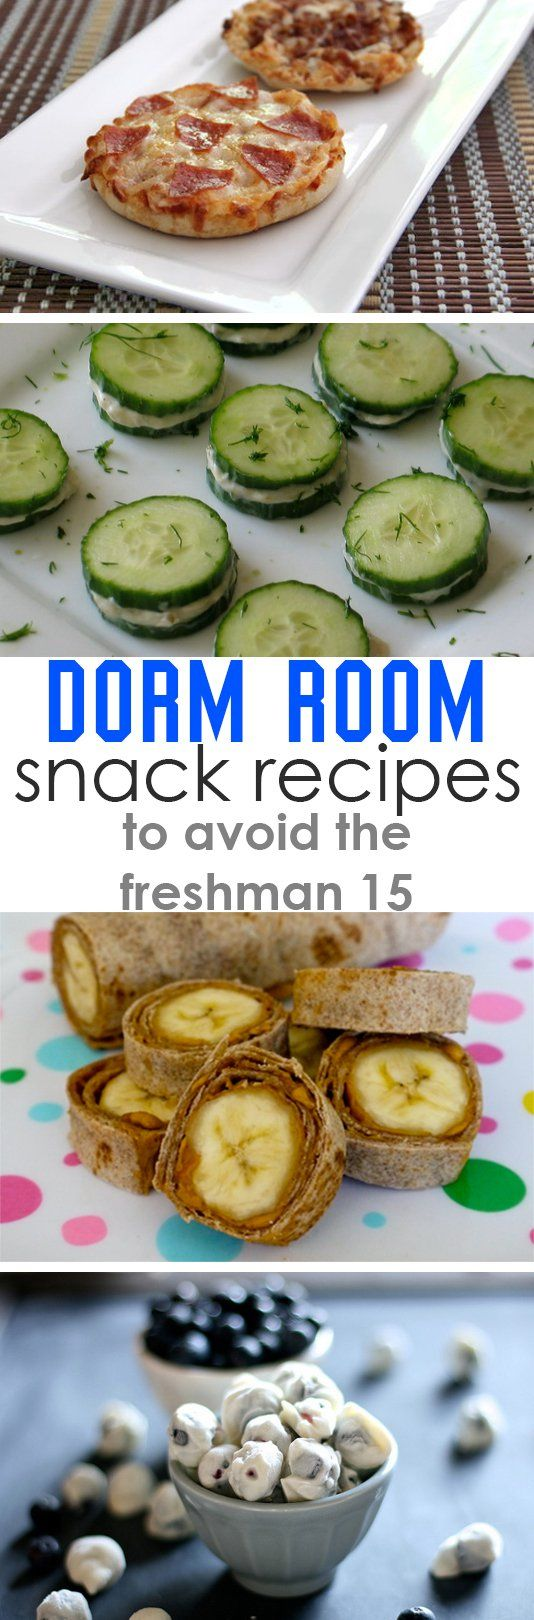 Healthy Dorm Room Snack Recipes  @kylabeann maybe some of these yes? to counteract the massive amount of Oreos and peanut butter we're gonna eat